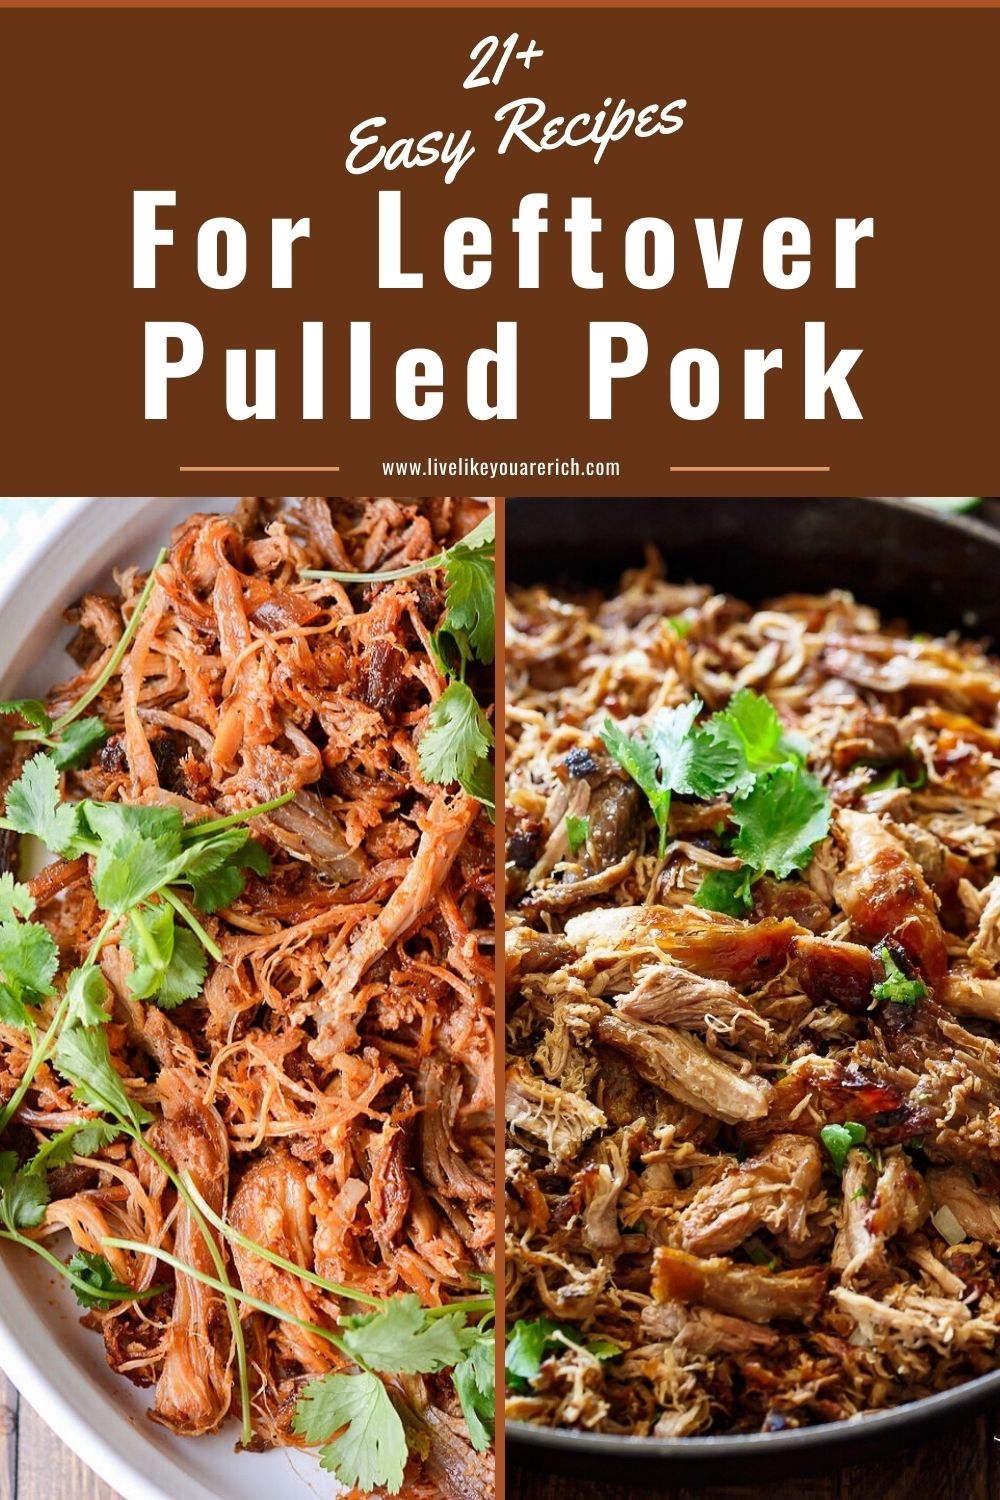 My family often has leftovers from our fall-part-tender smoked pulled pork recipe. I've rounded up 21+ delicious pulled pork recipes and decided to share them with you as well.